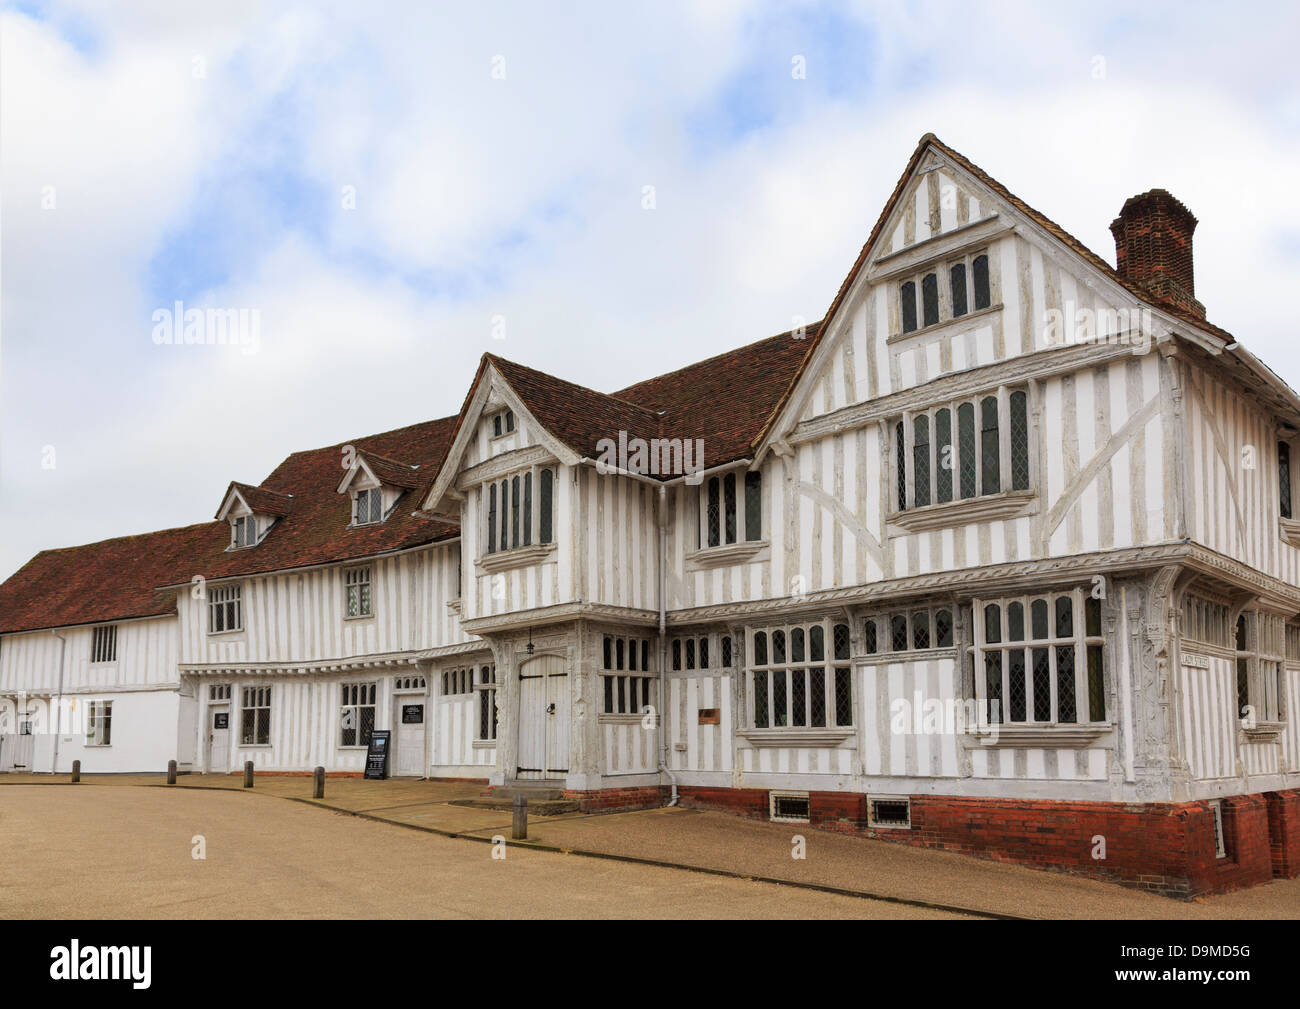 Guildhall of wool guild of Corpus Christi in 16thc Tudor half timbered building in medieval village Lavenham Suffolk - Stock Image